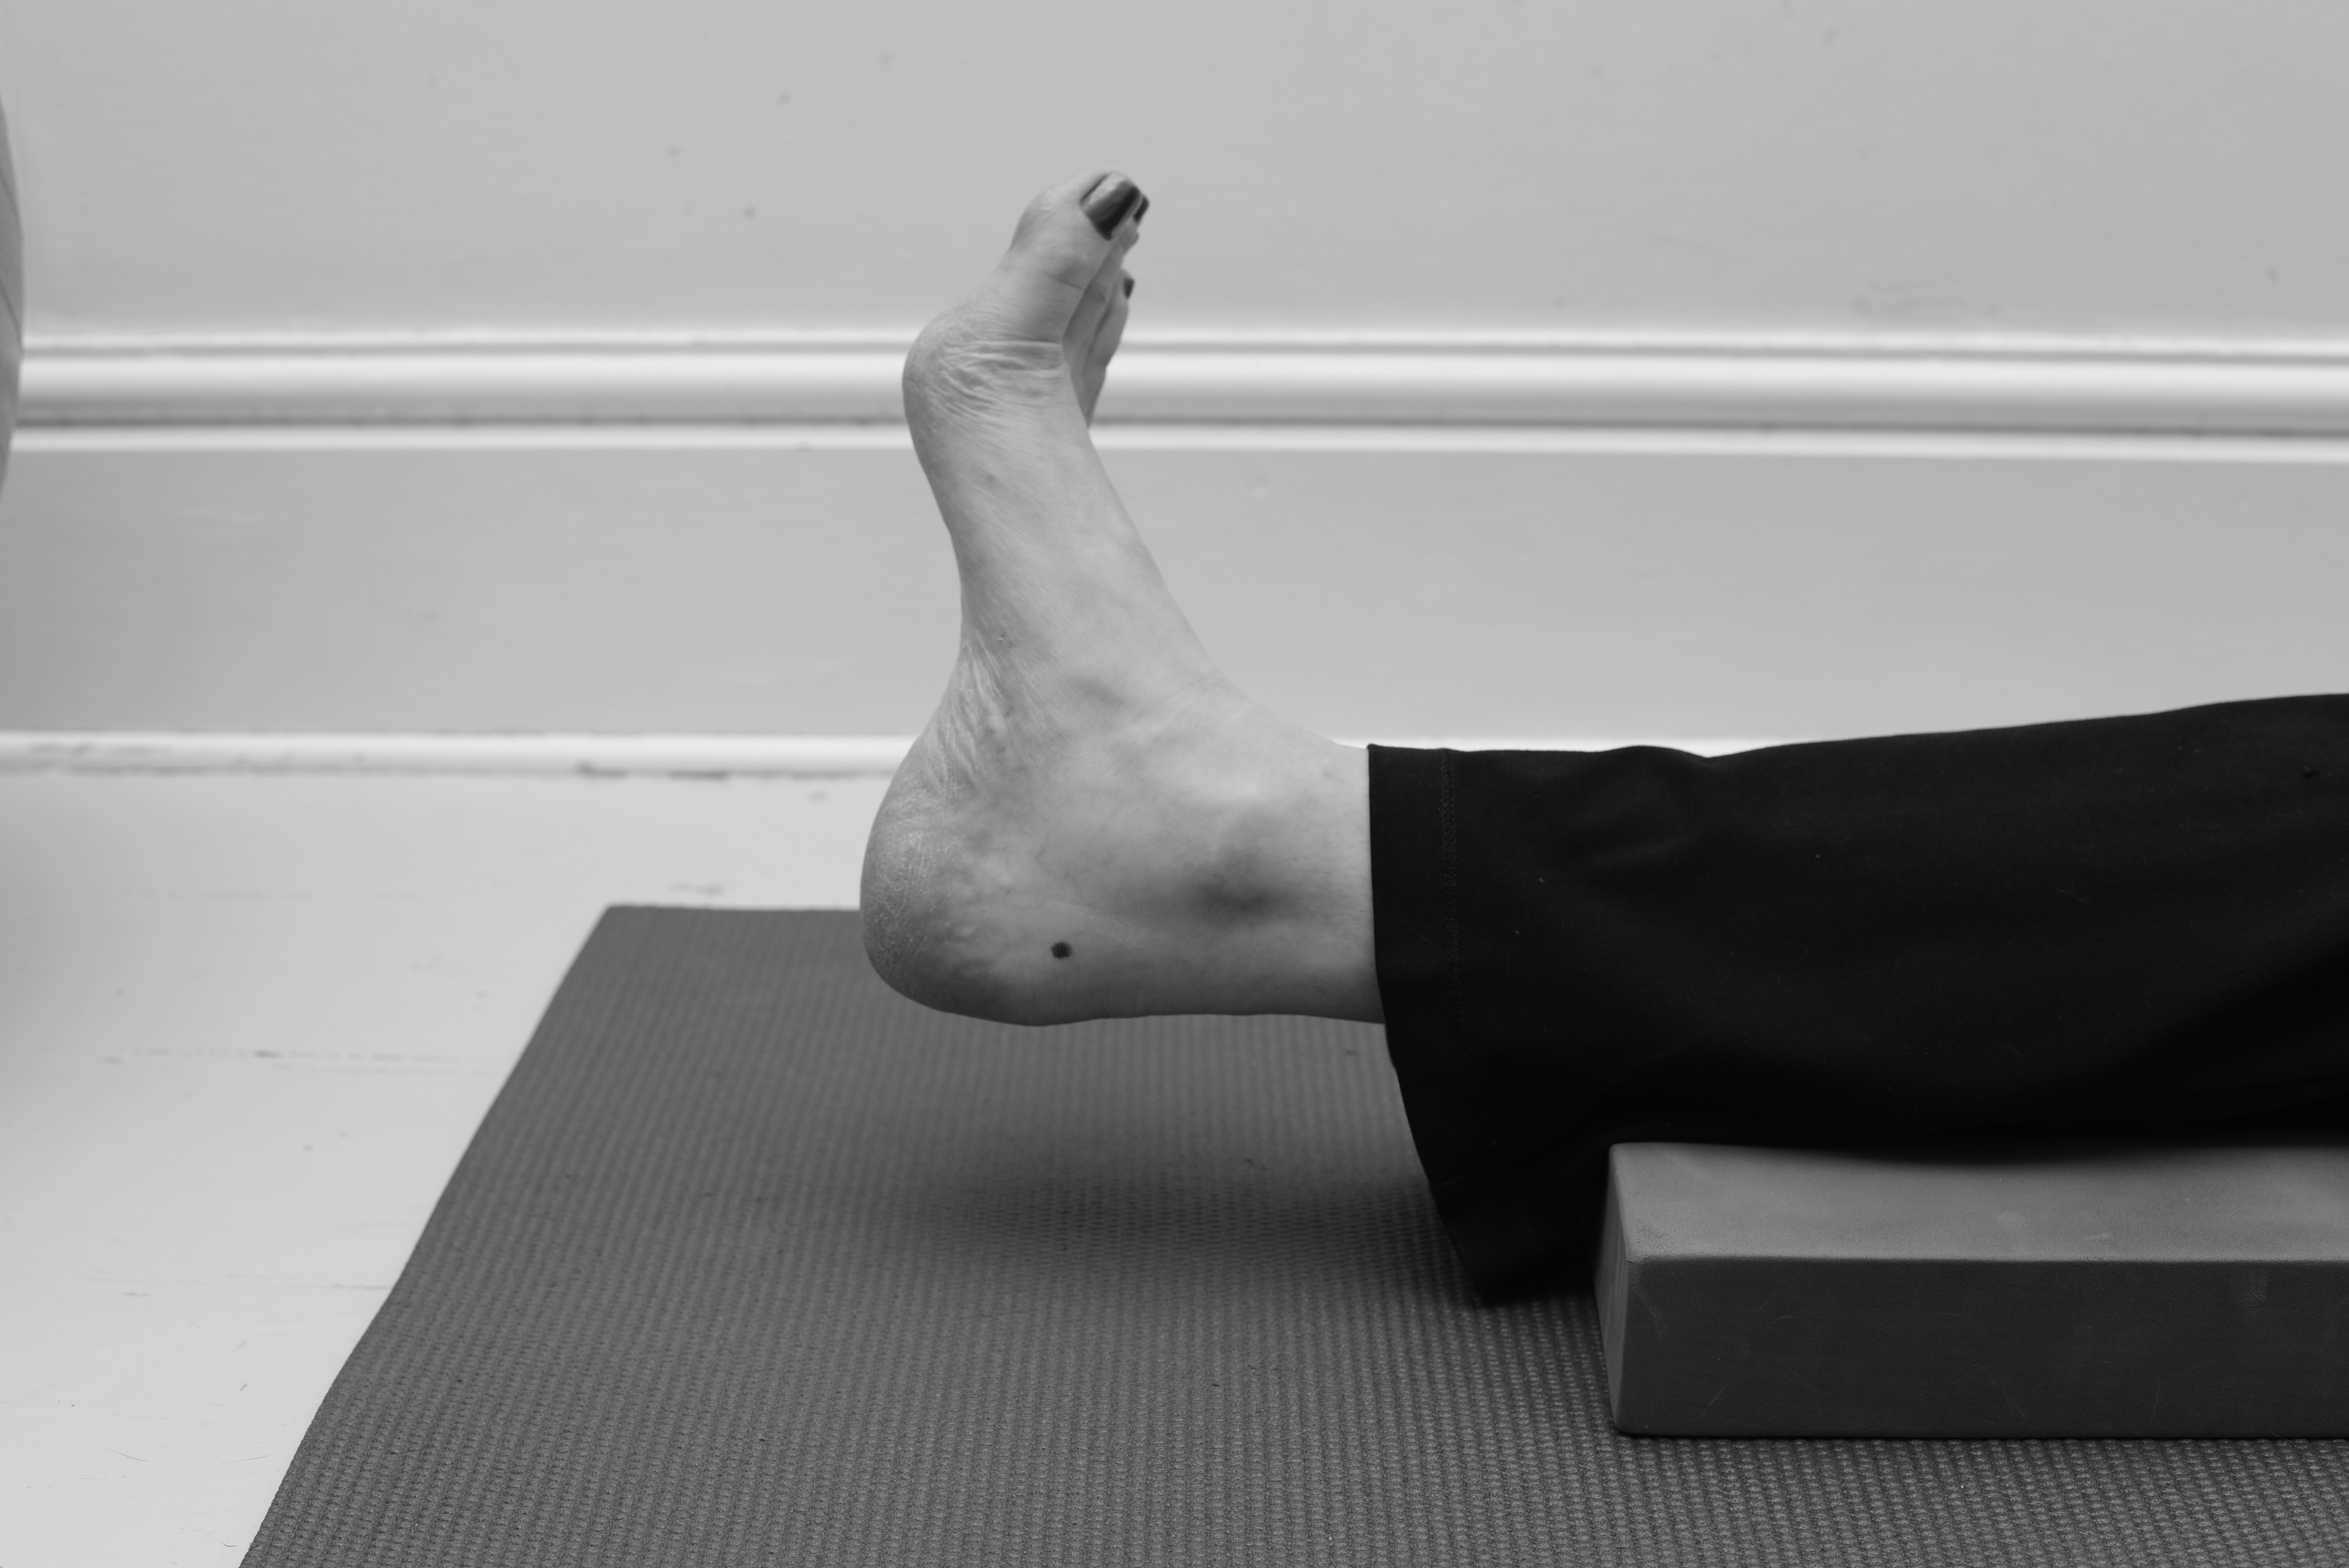 Toes point outwards - ankle exercise